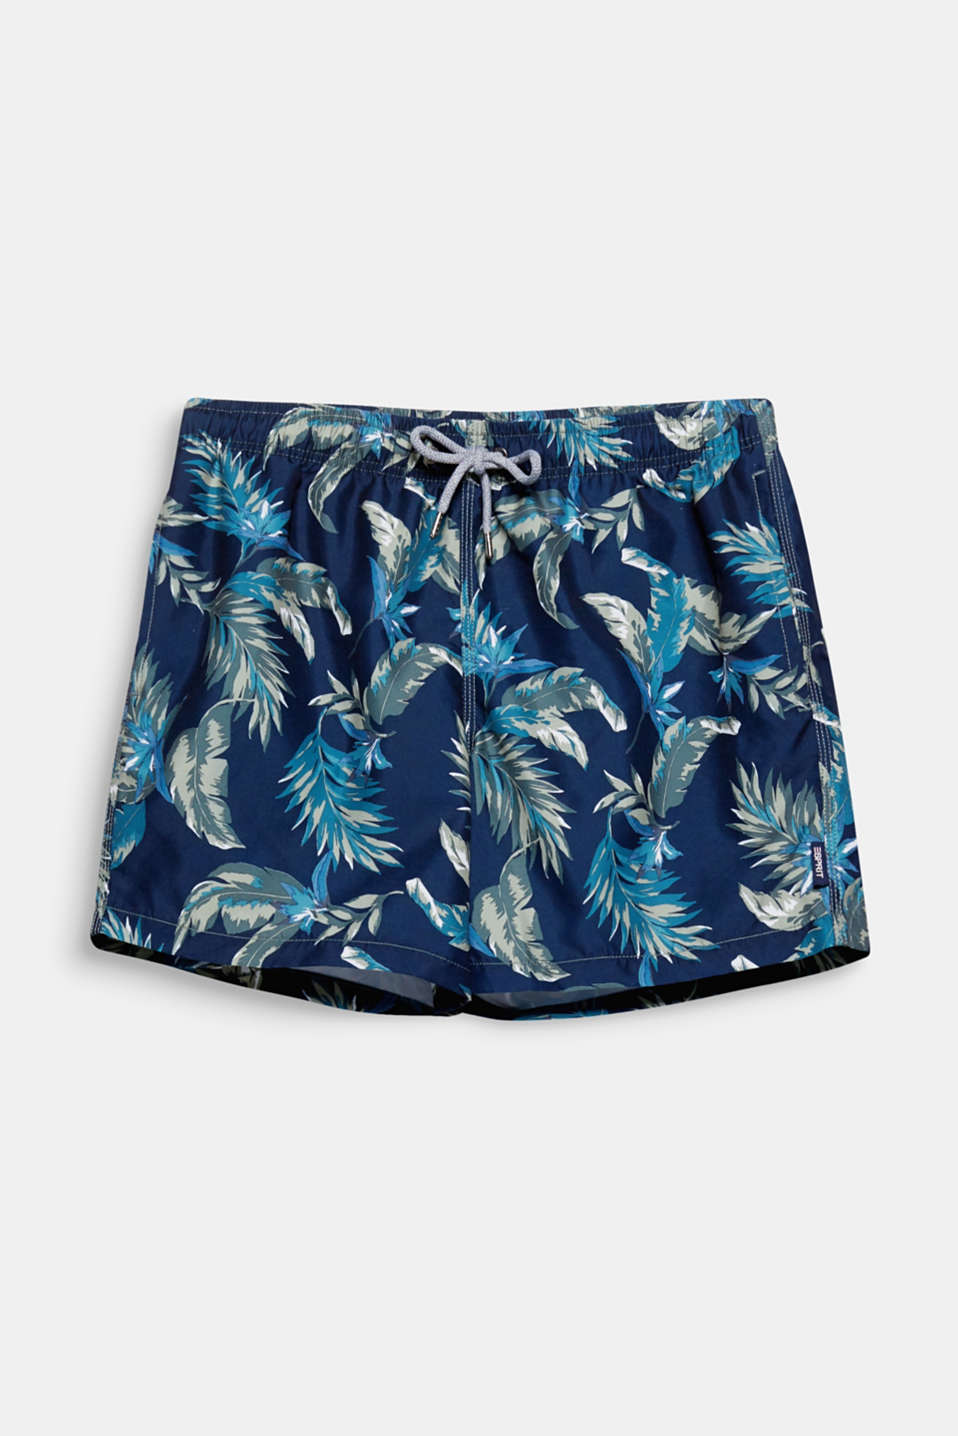 The distinctive leaf print on these casual swim shorts signalises summer and adventure!